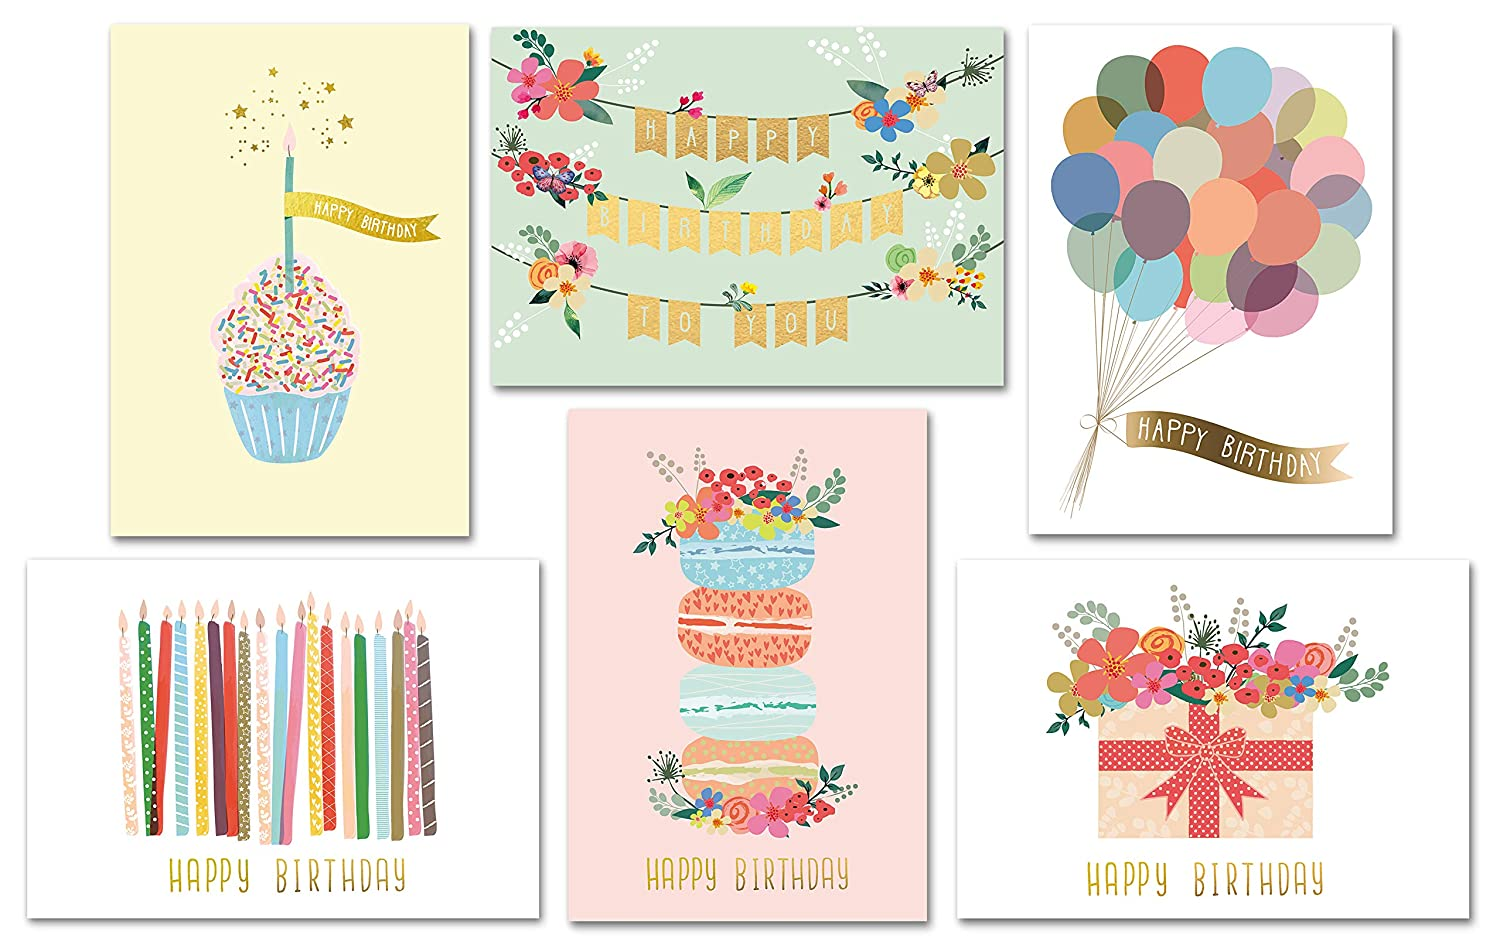 Gold Foil Bulk Birthday Cards Assortment 48pc Happy Card With Envelopes Box Set Assorted Blank For Women Men